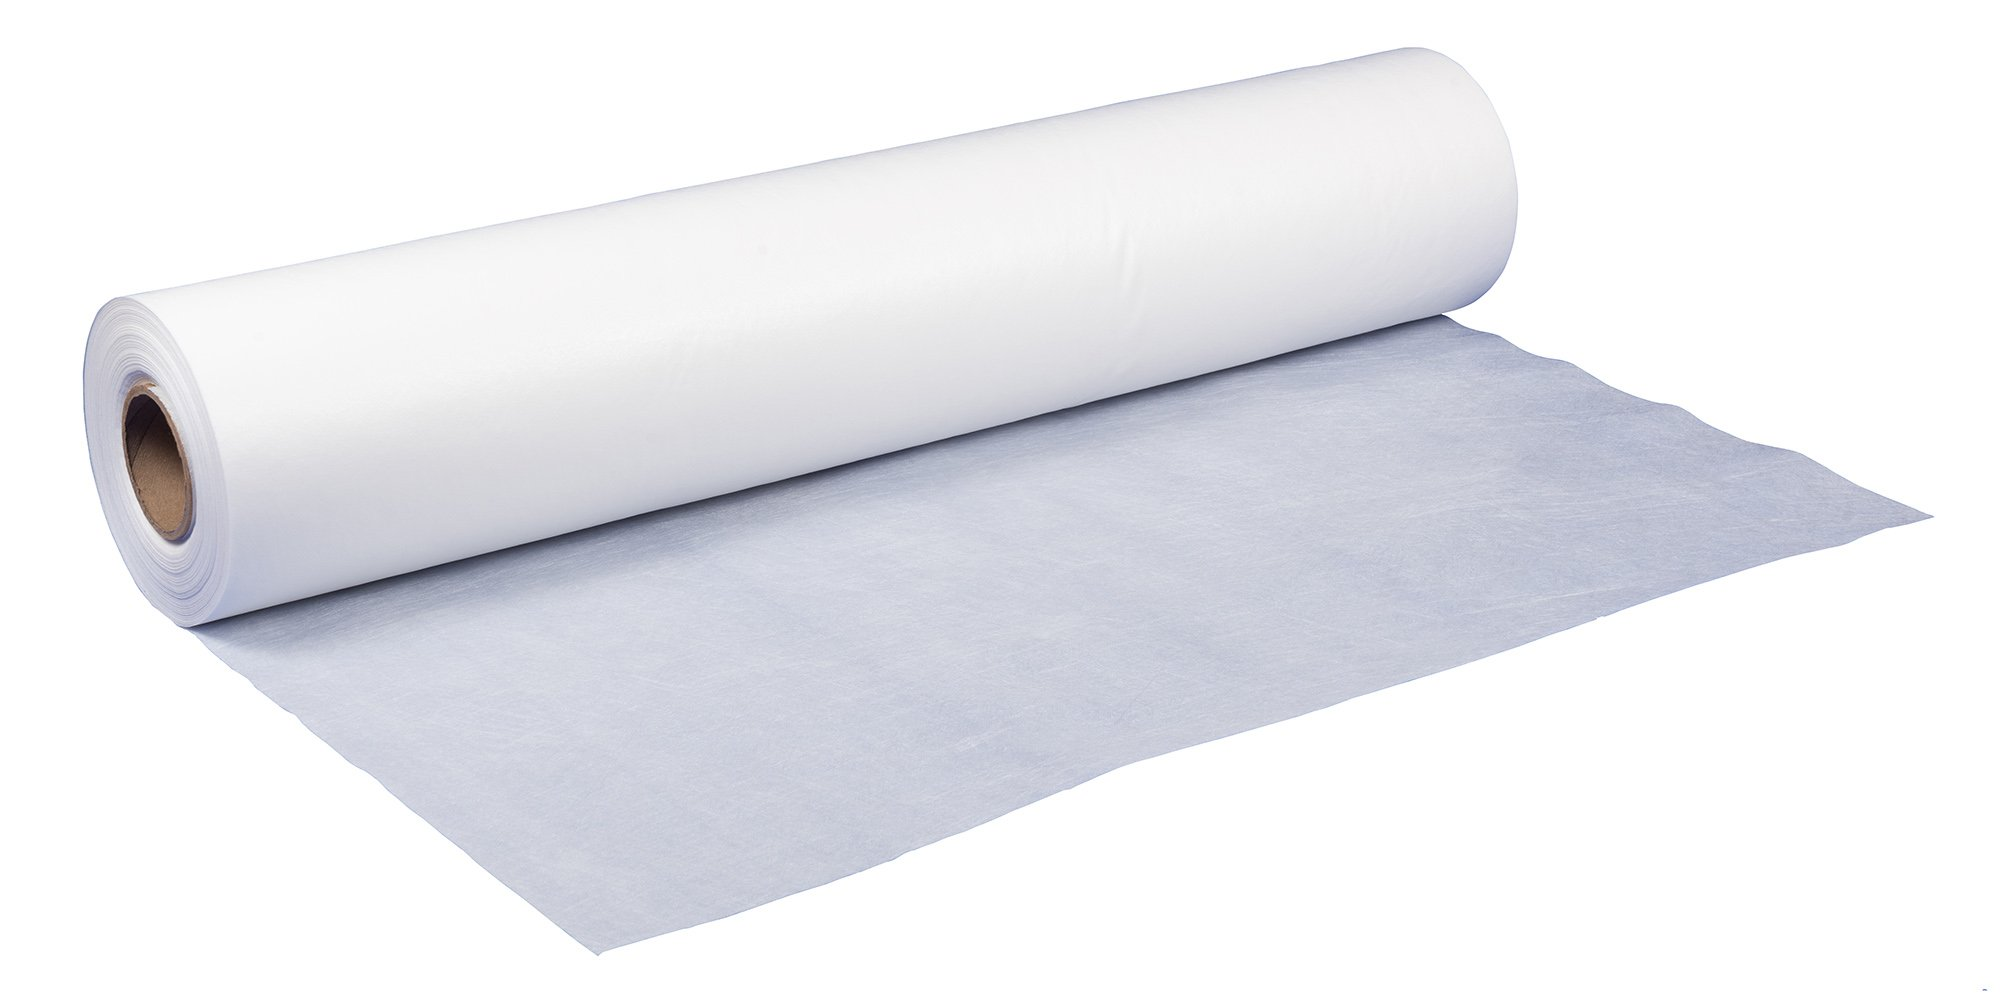 Chemco, 60HSFRP, 300'x60'' High Strength Floor Covering Roll, Flame Retardant Surface Protection, 1 Roll